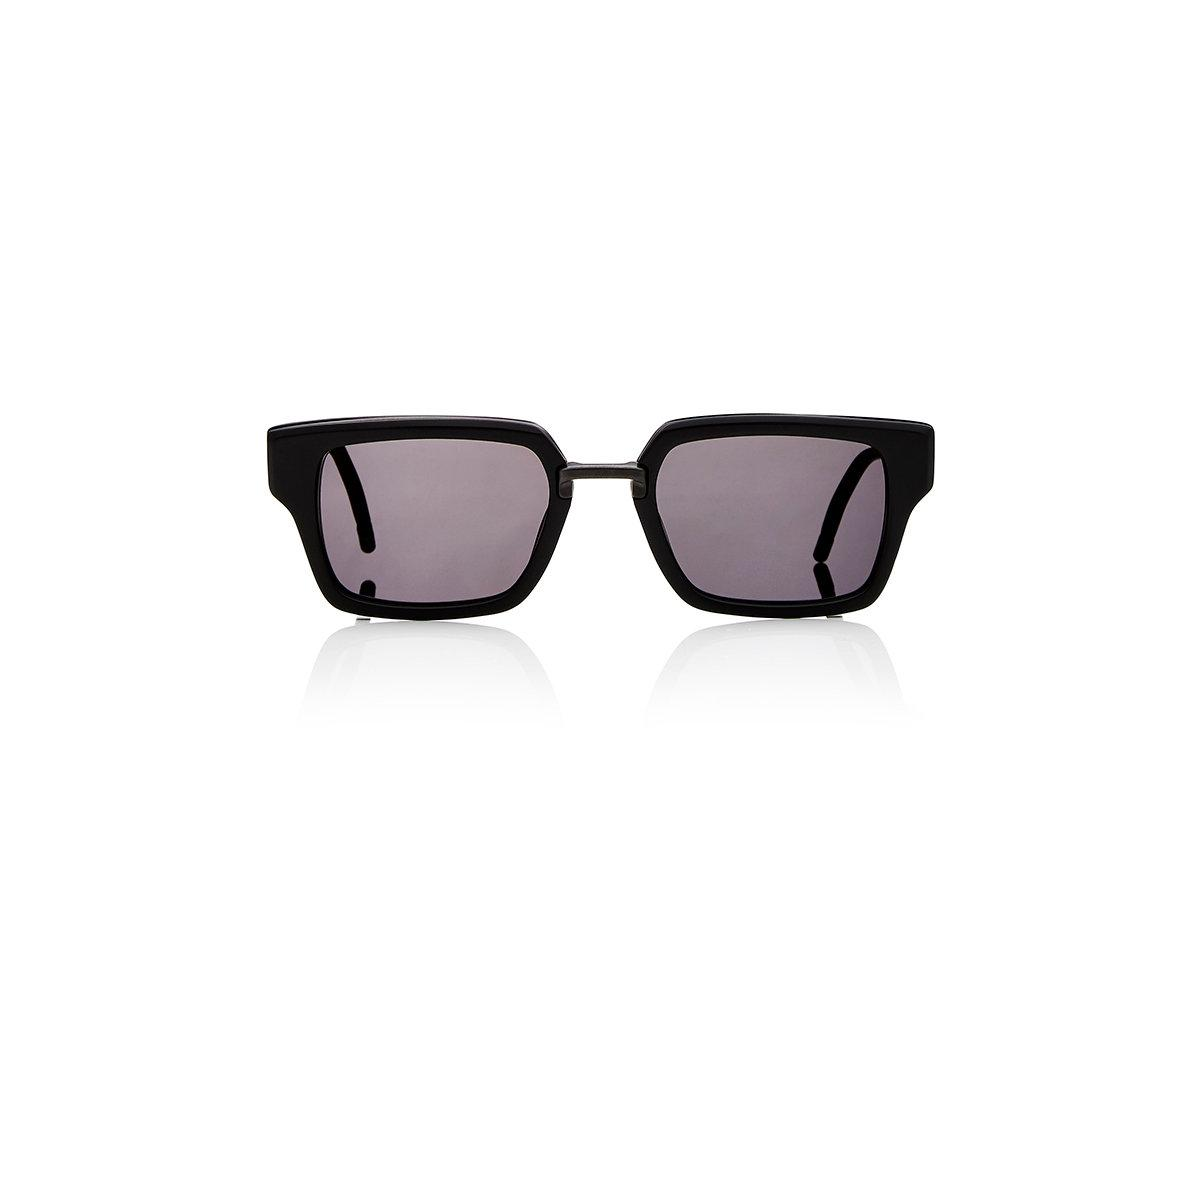 a4d6488dc70 Lyst - Thom Browne Tb 703 Sunglasses in Black for Men